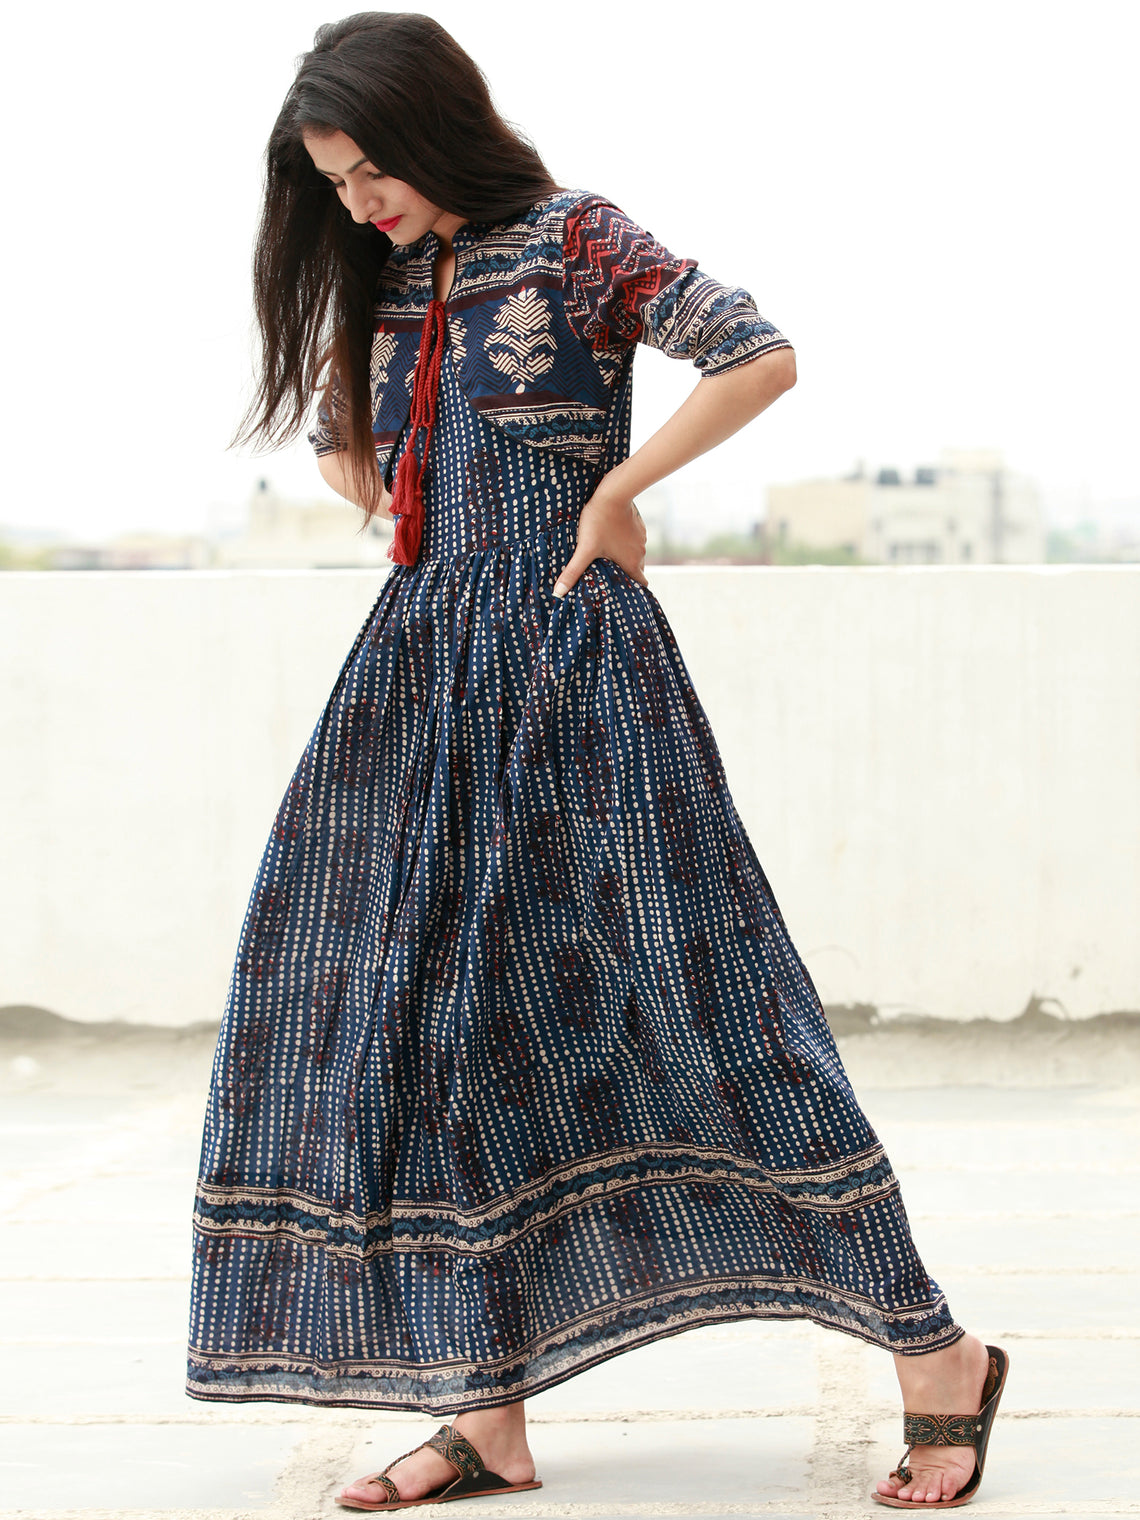 Naaz Indigo Rust Beige Hand Block Printed Long Cotton Dress with Tassels - DS14F003